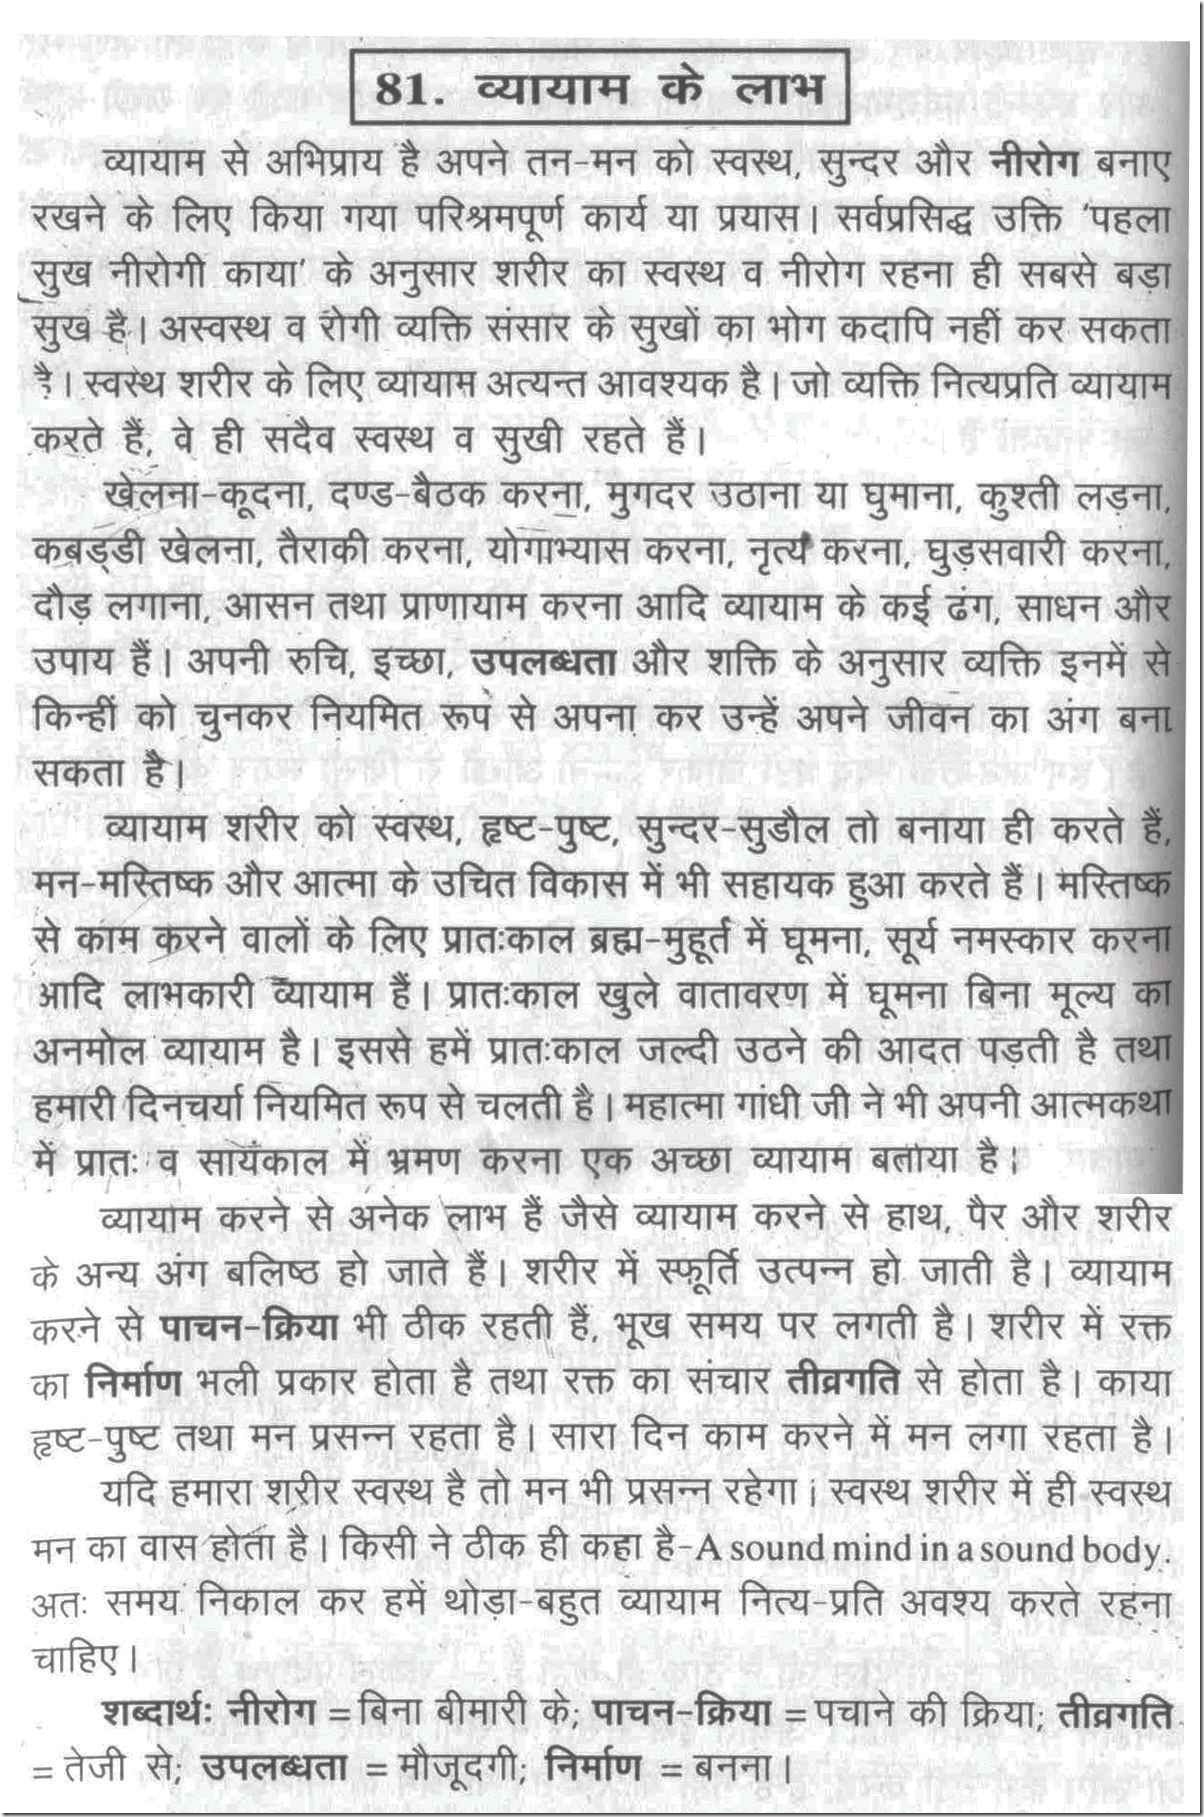 011 2563478896 Essay On Health And Fitness Through Food Good Habits In Hindi Exceptional Habit Eating Bad Full